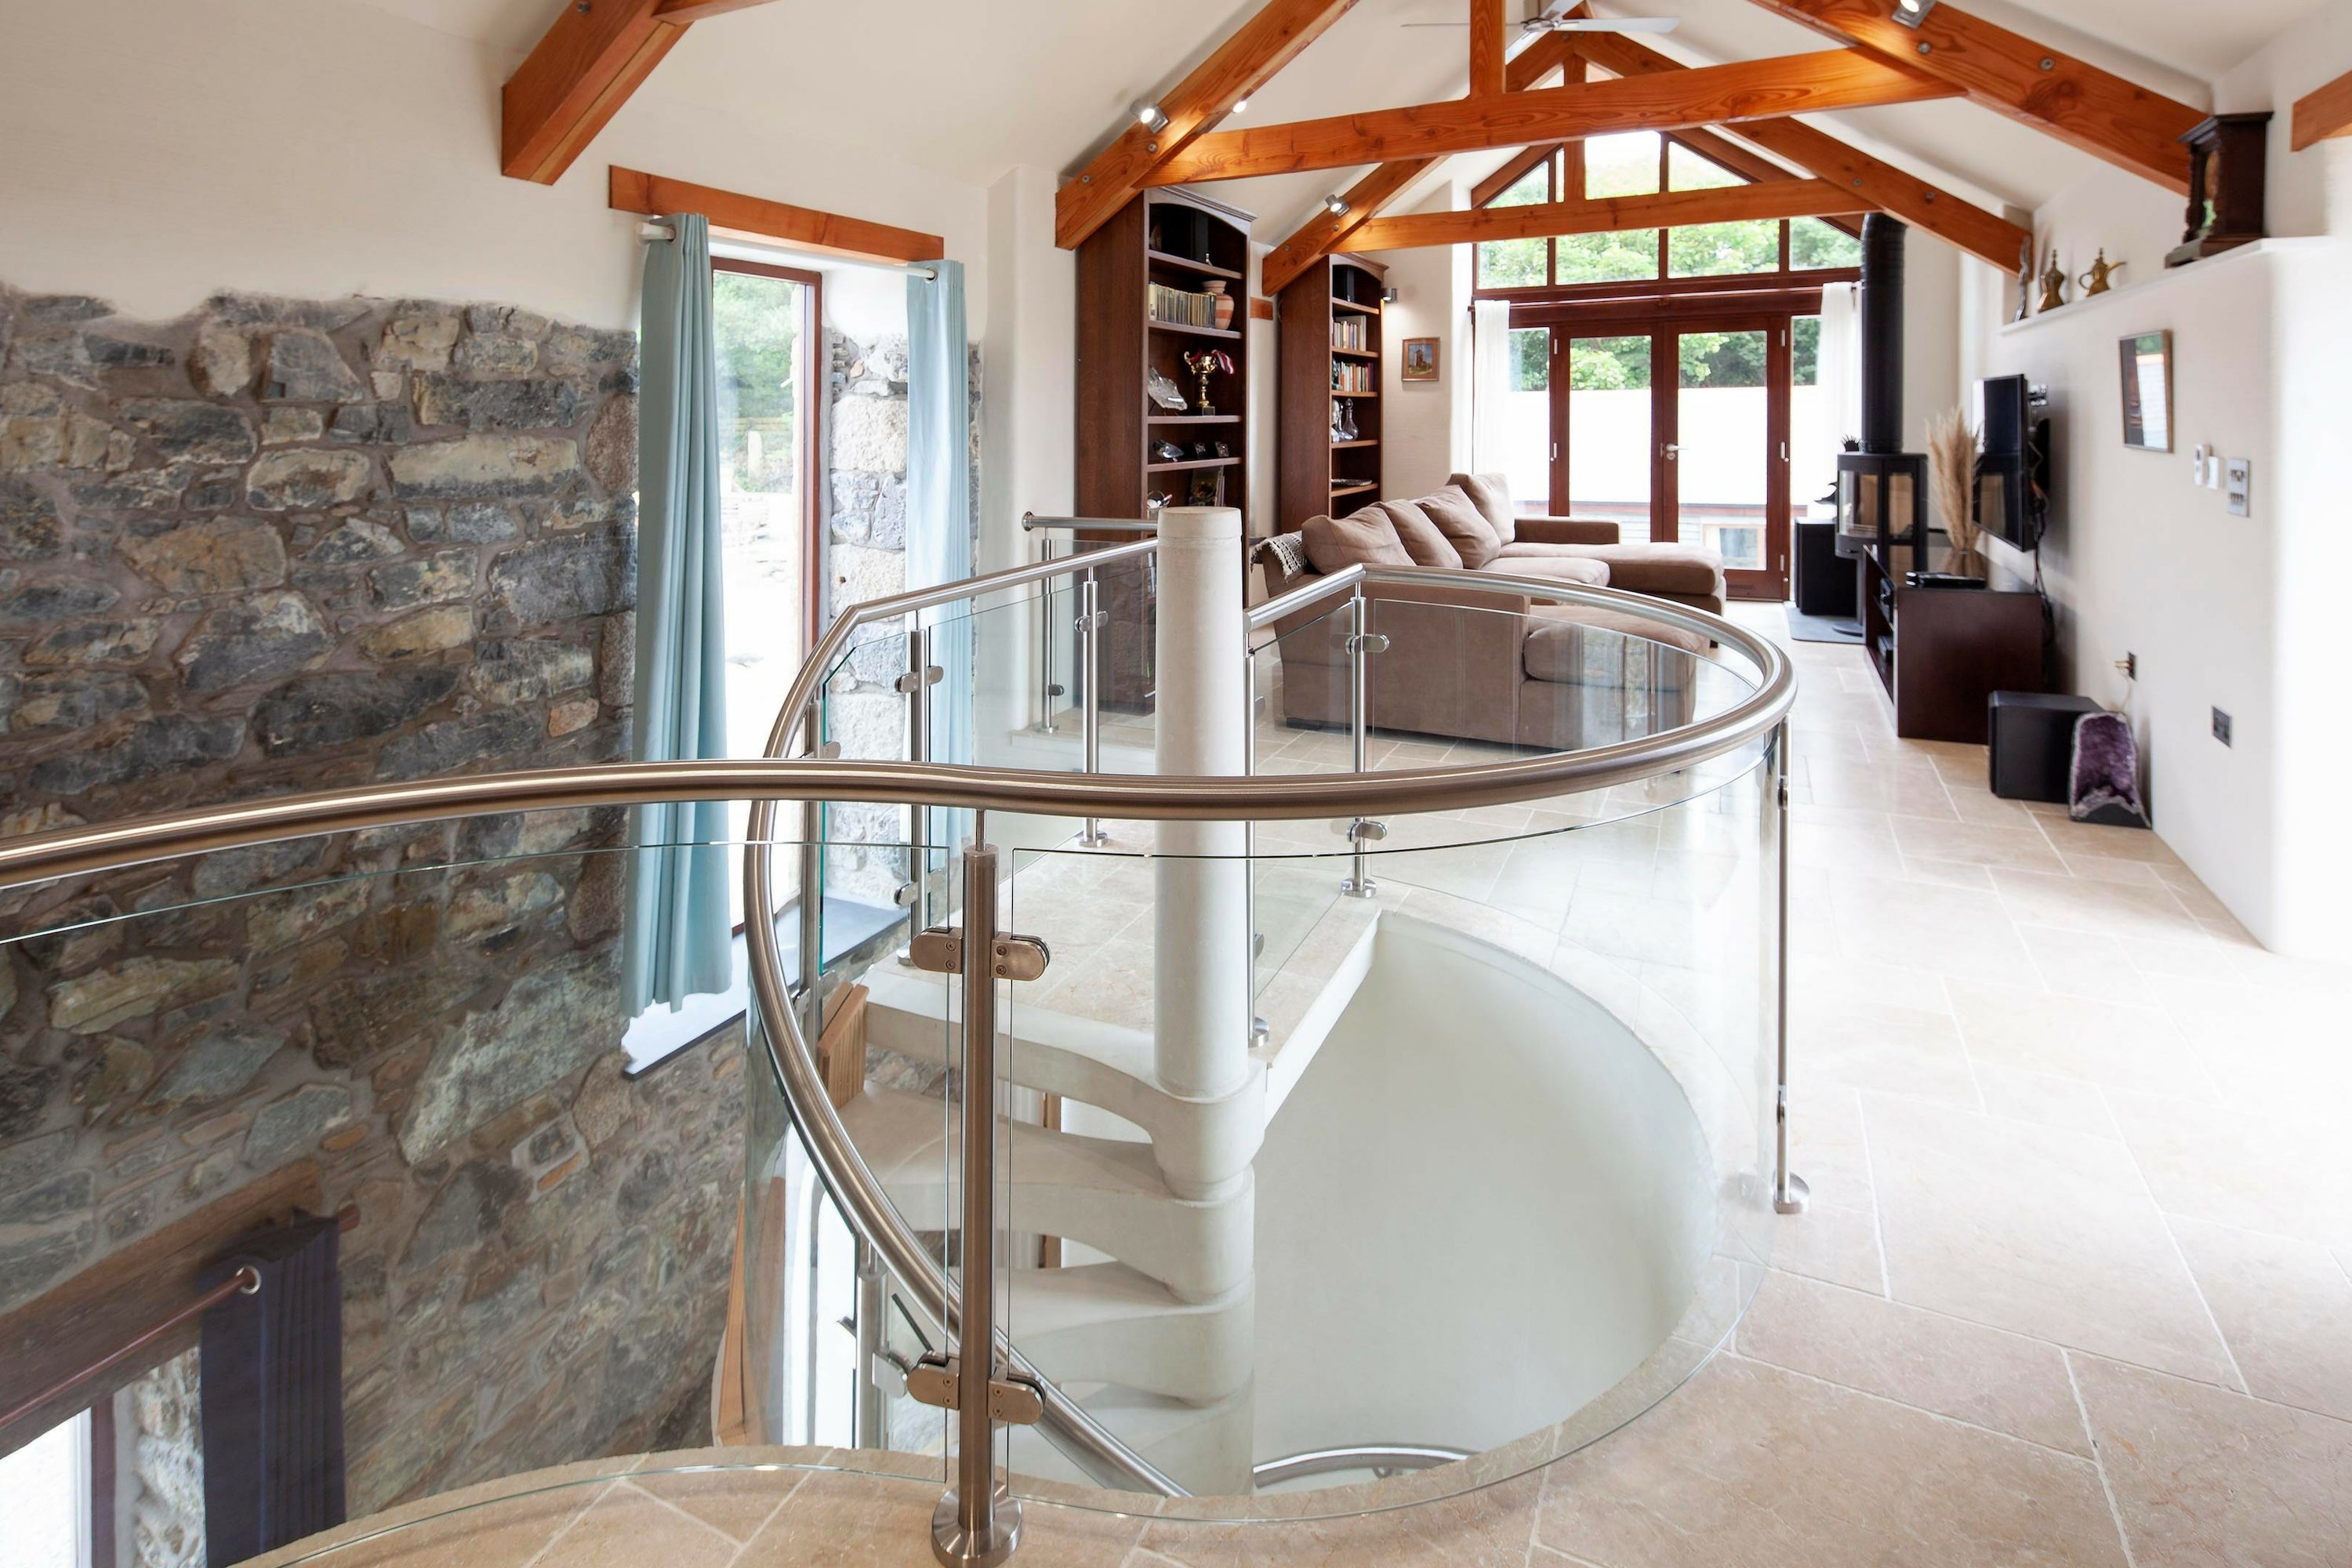 Glass balustrade and stainless steel handrail